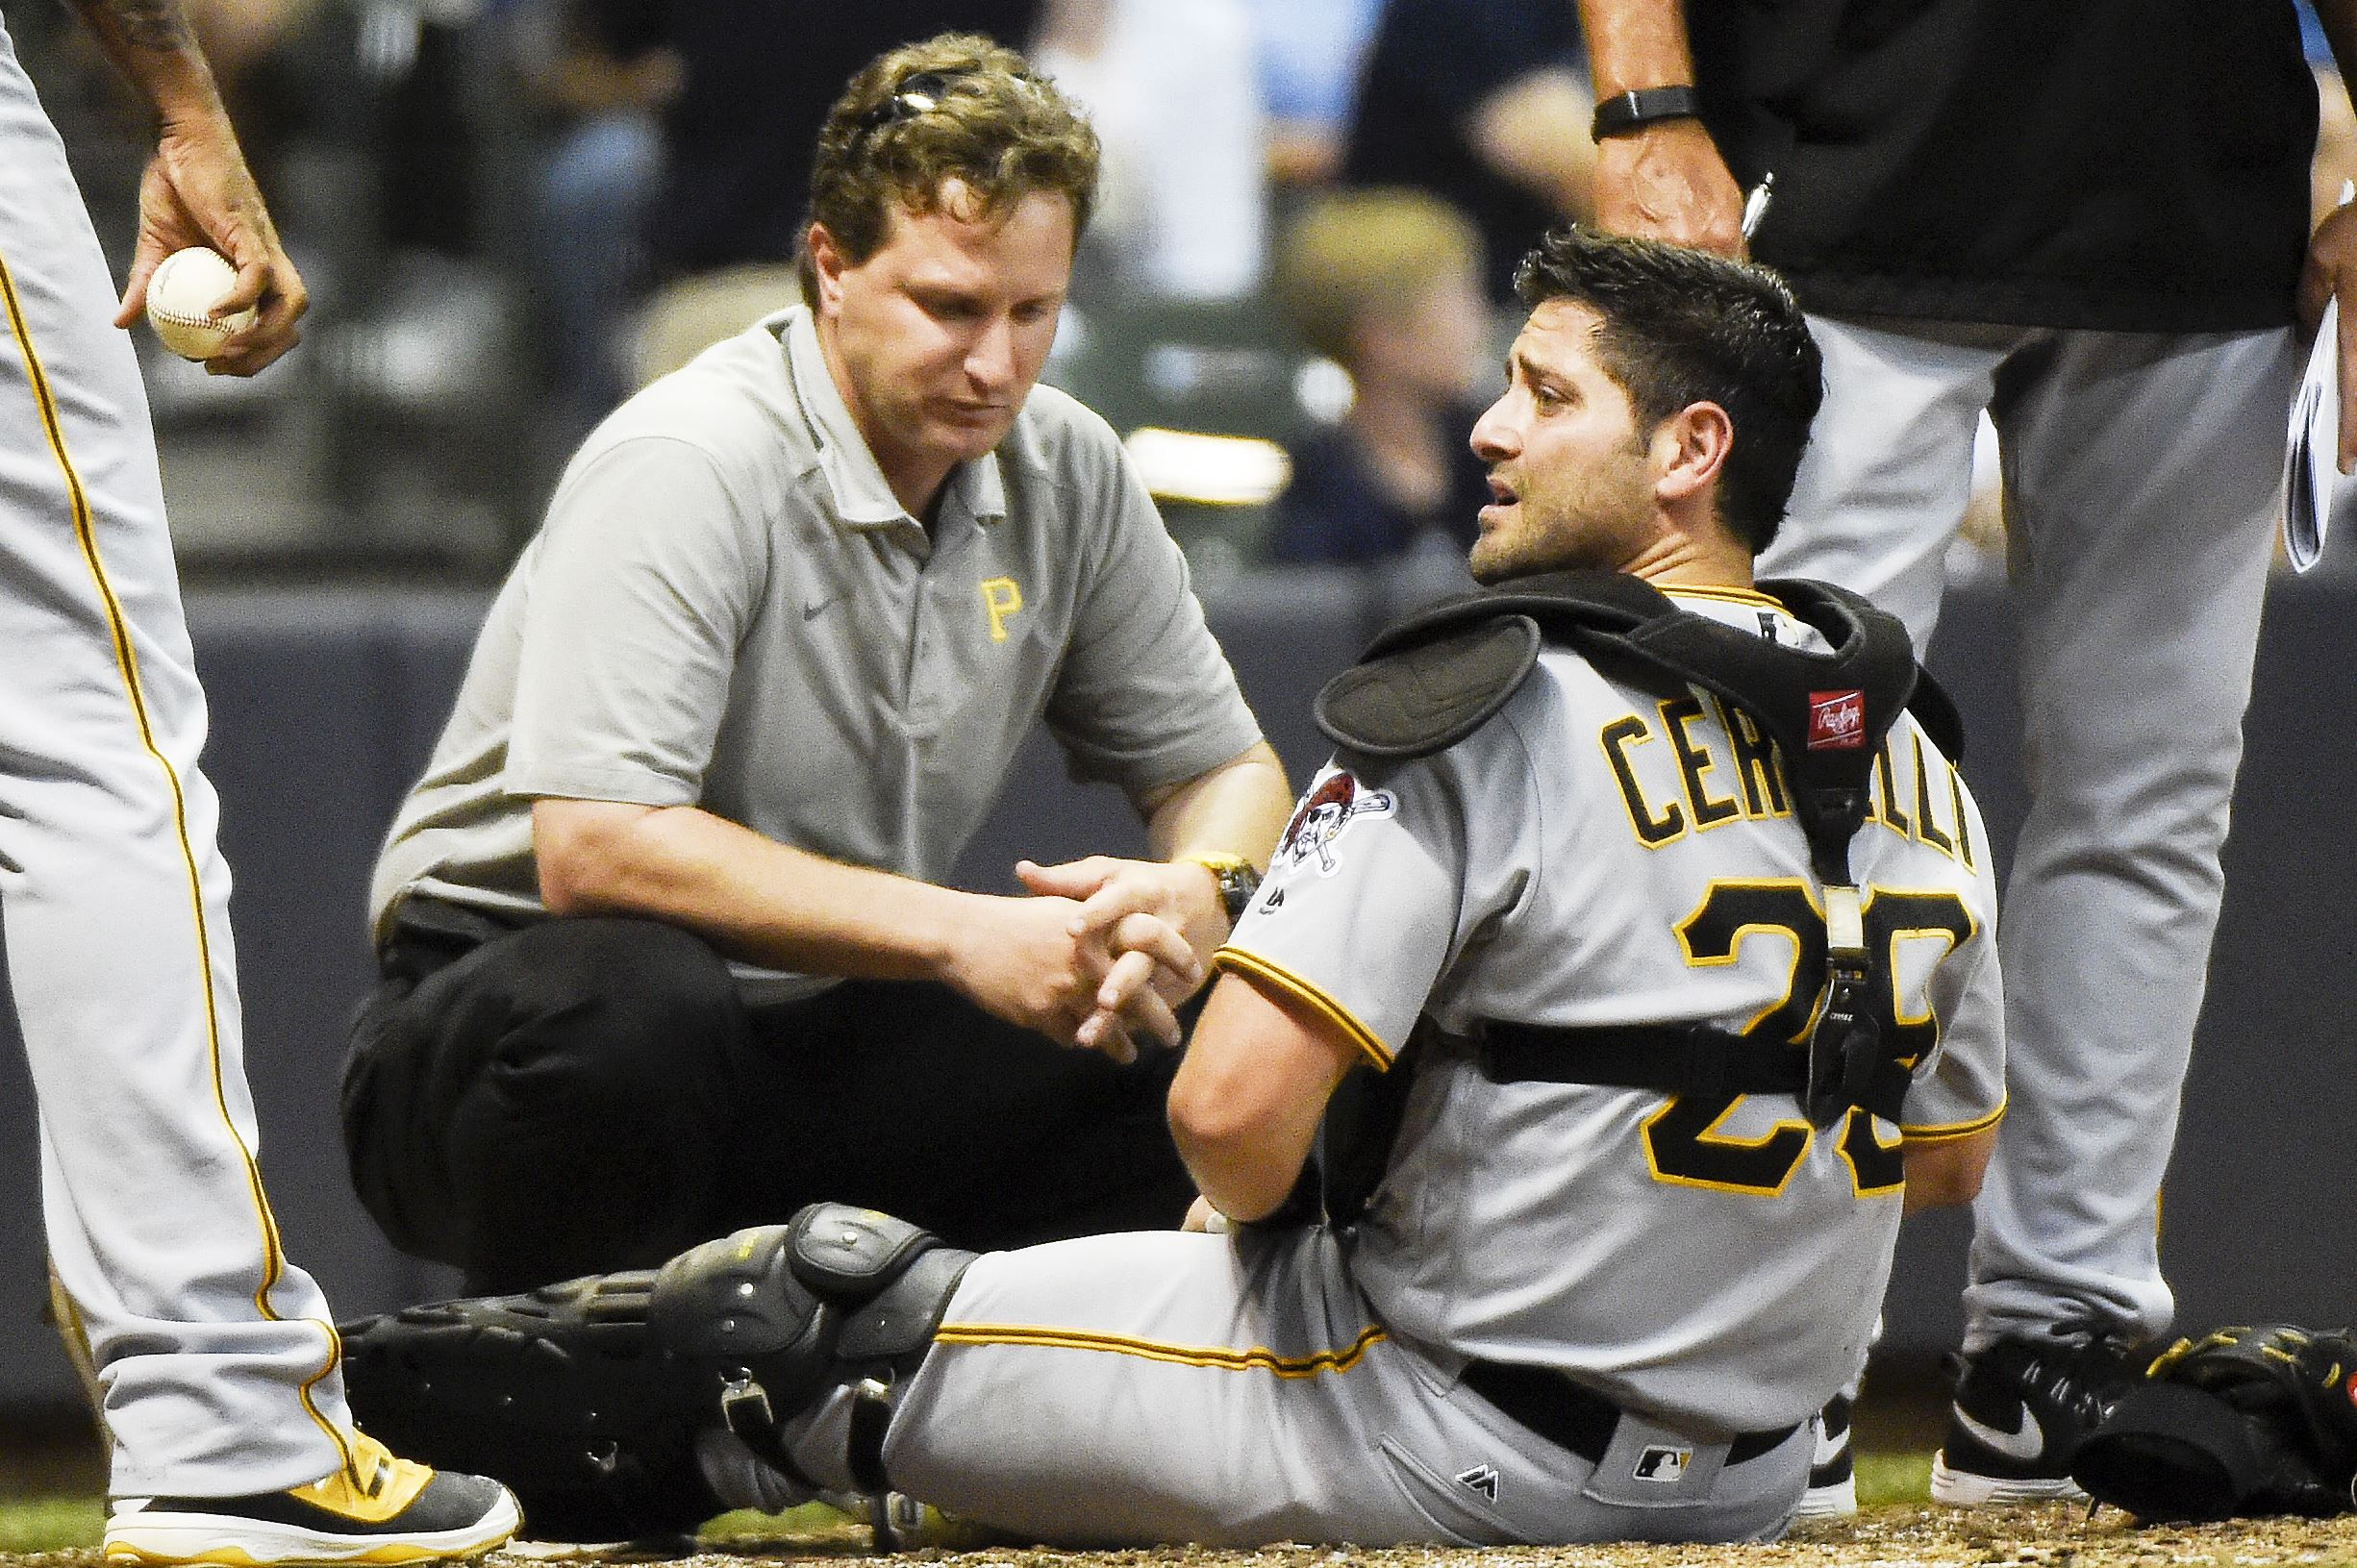 Pirates' Cervelli did not suffer broken bone in foot against Brewers